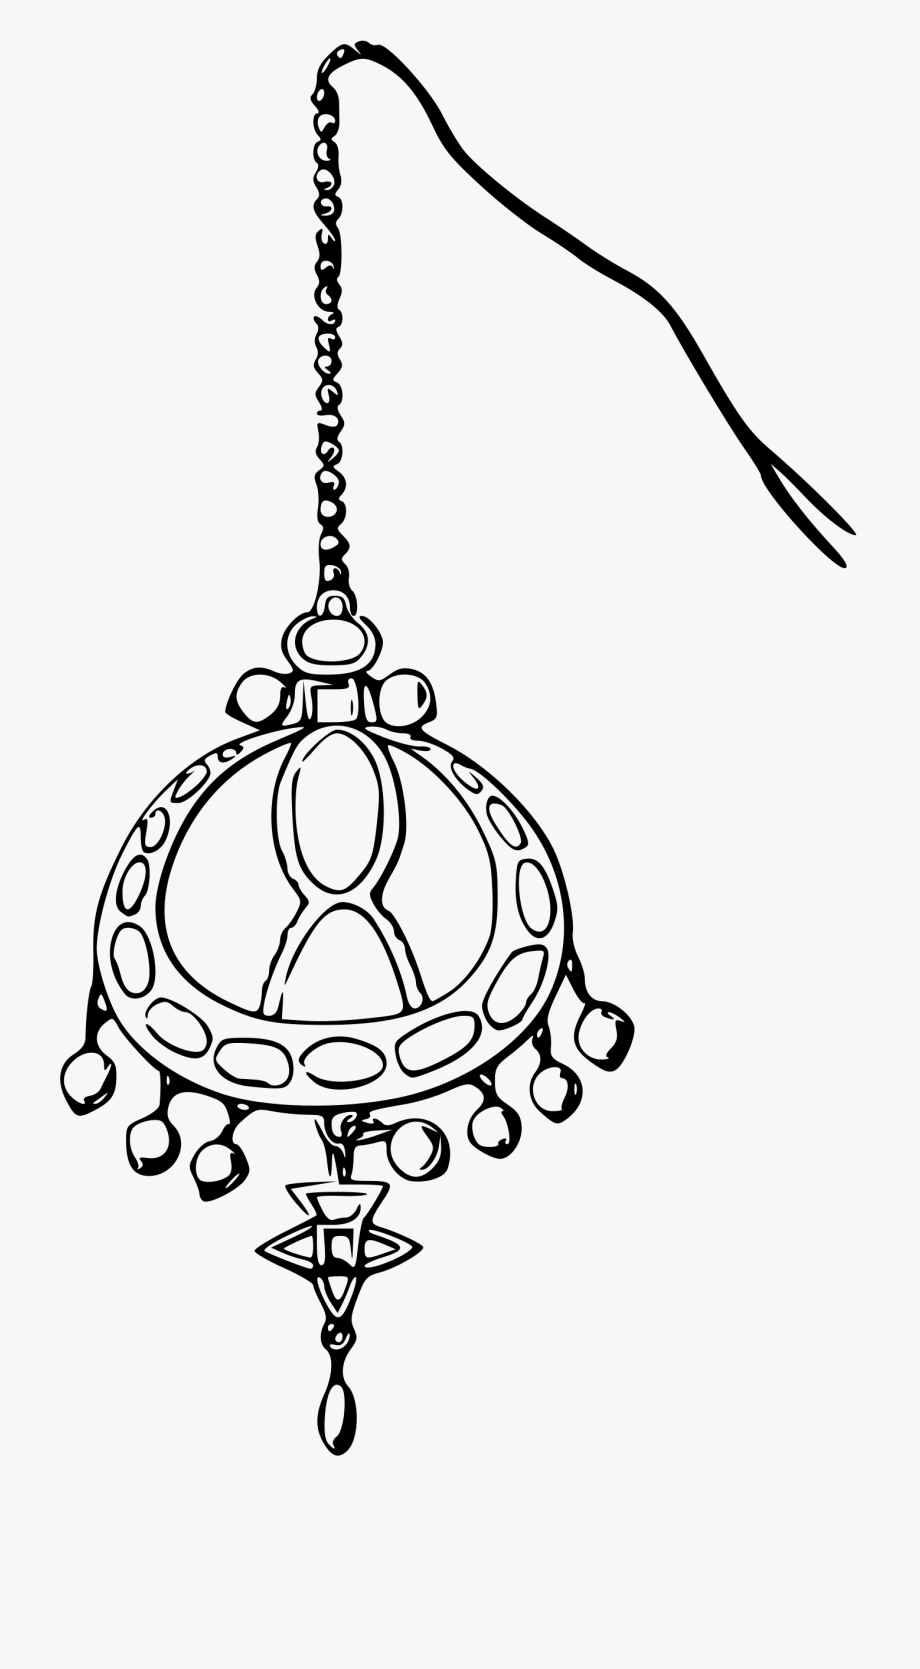 Indian art clipart freeuse stock Jewelry Clipart Indian Jewellery - Jewelry Clip Art Png #294423 ... freeuse stock